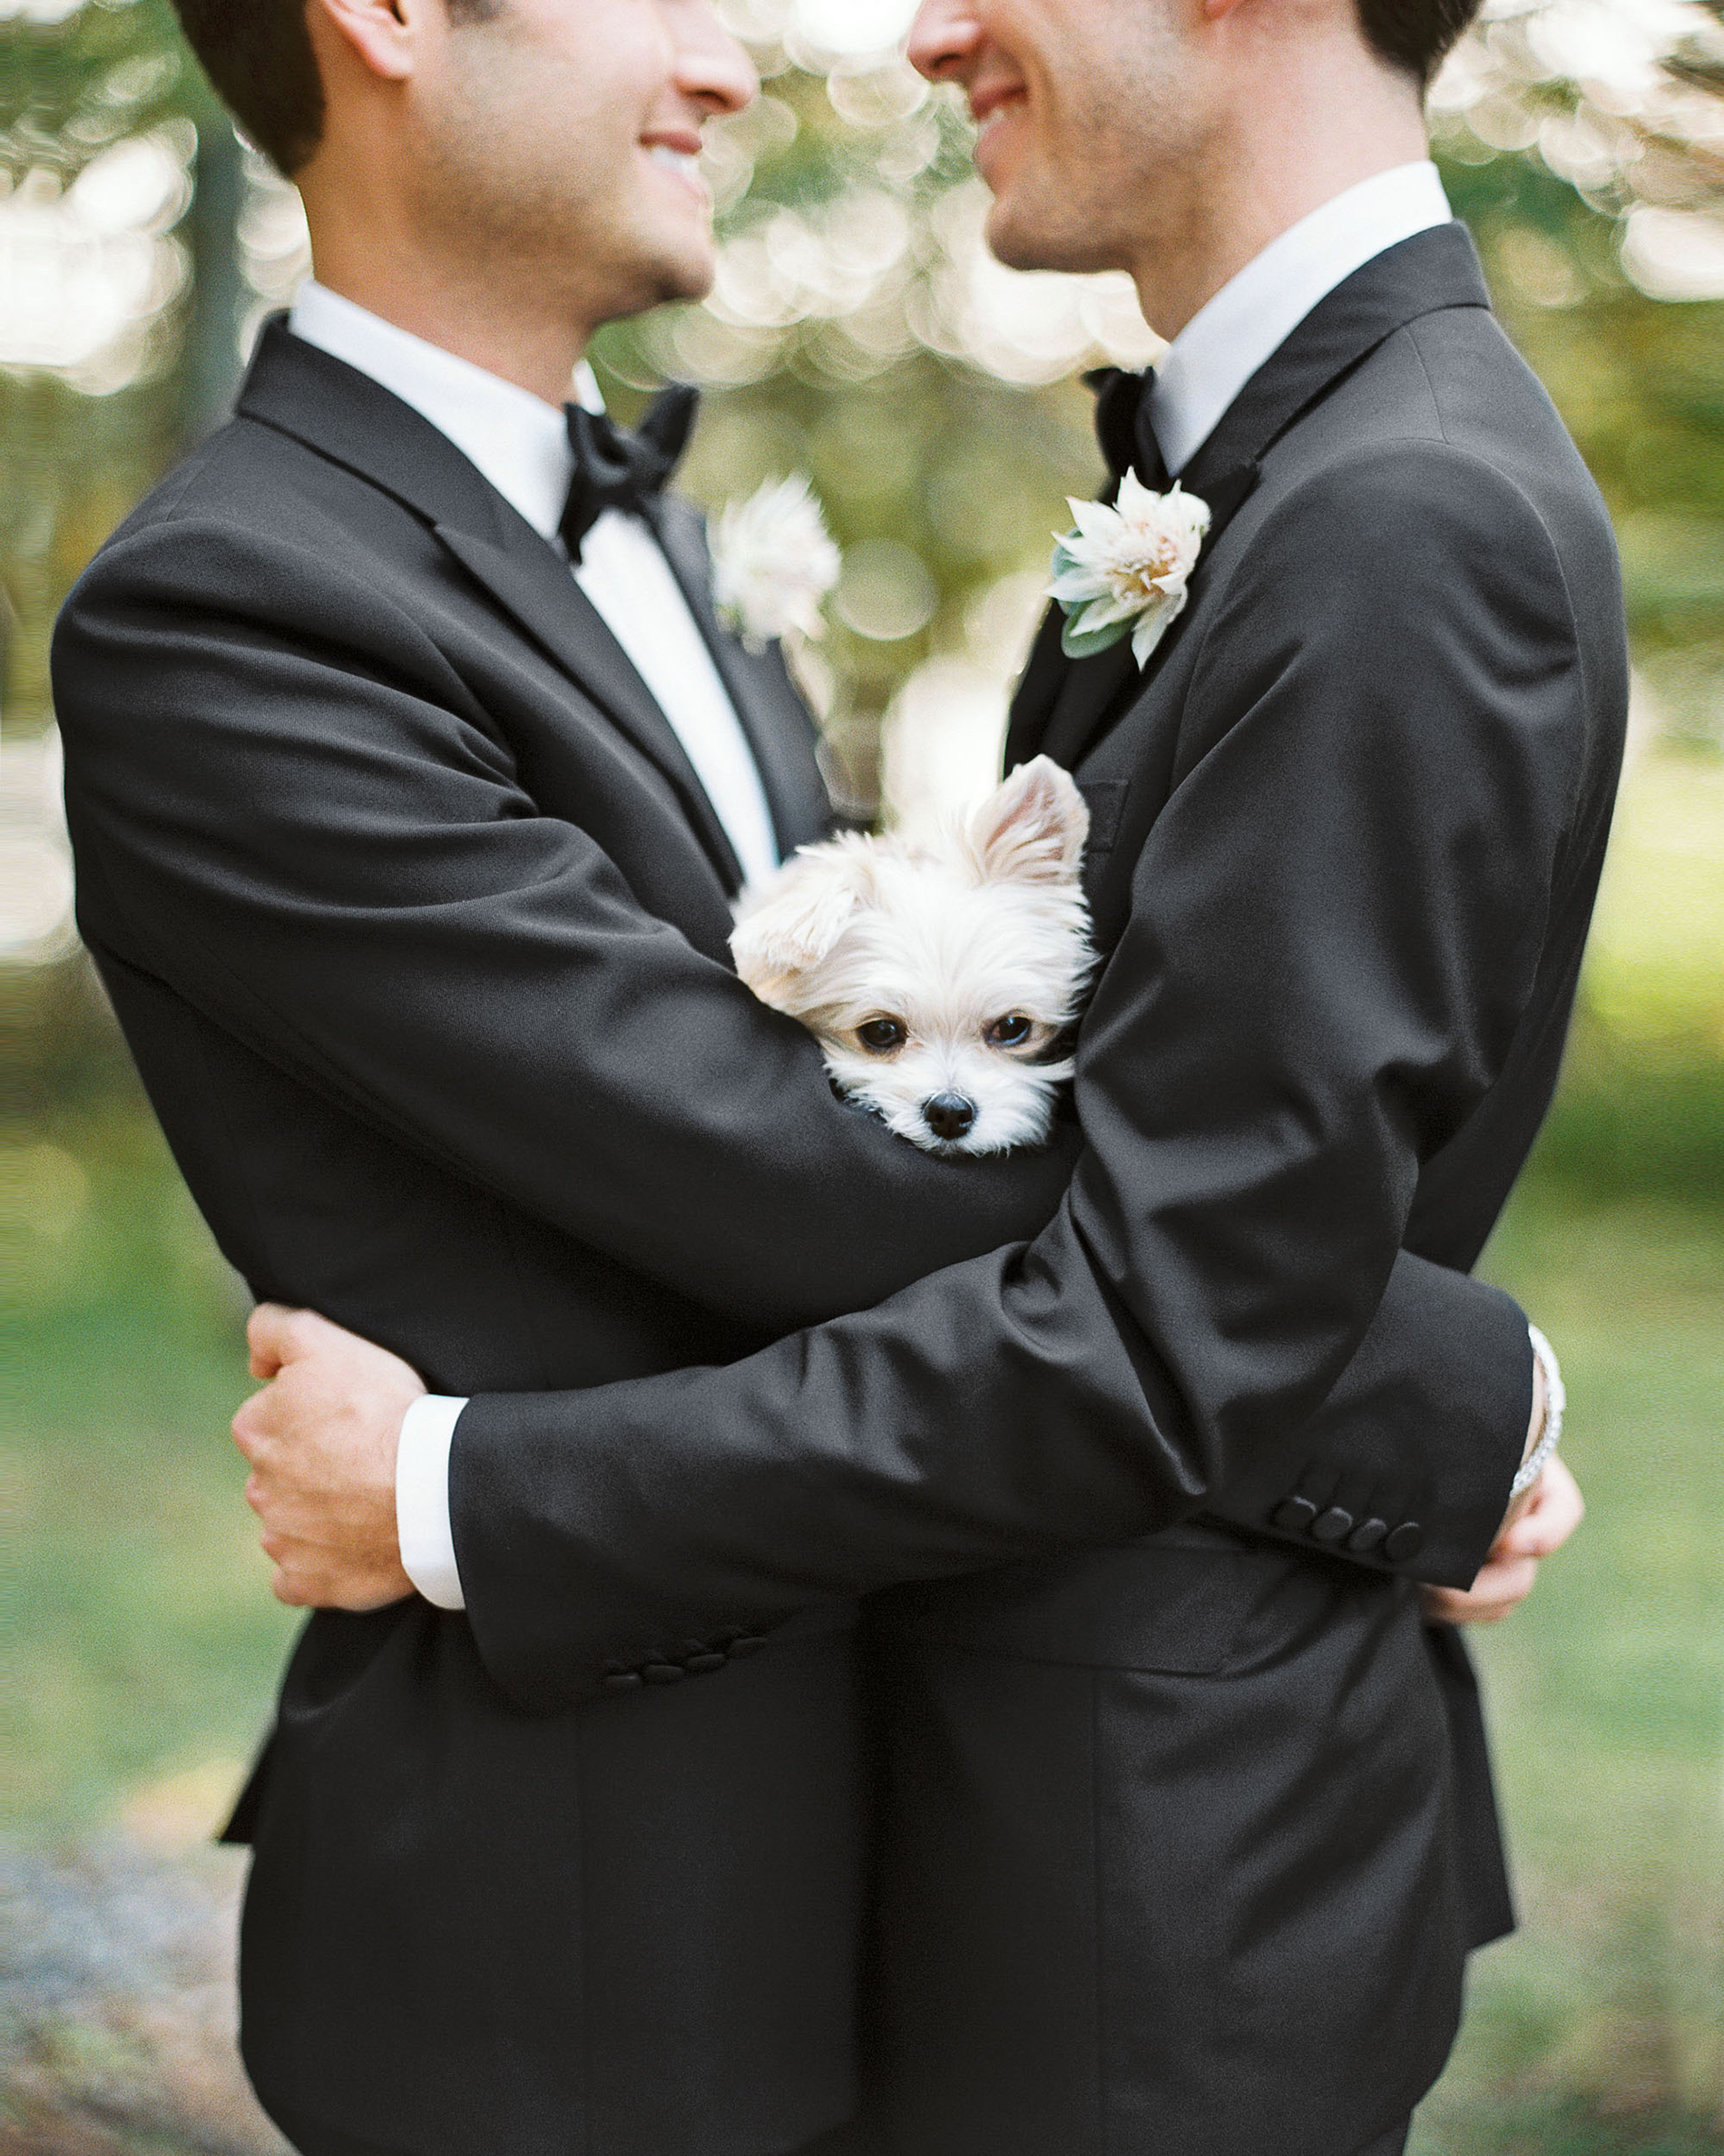 tory sean wedding lake placid new york couple embrace grooms dog